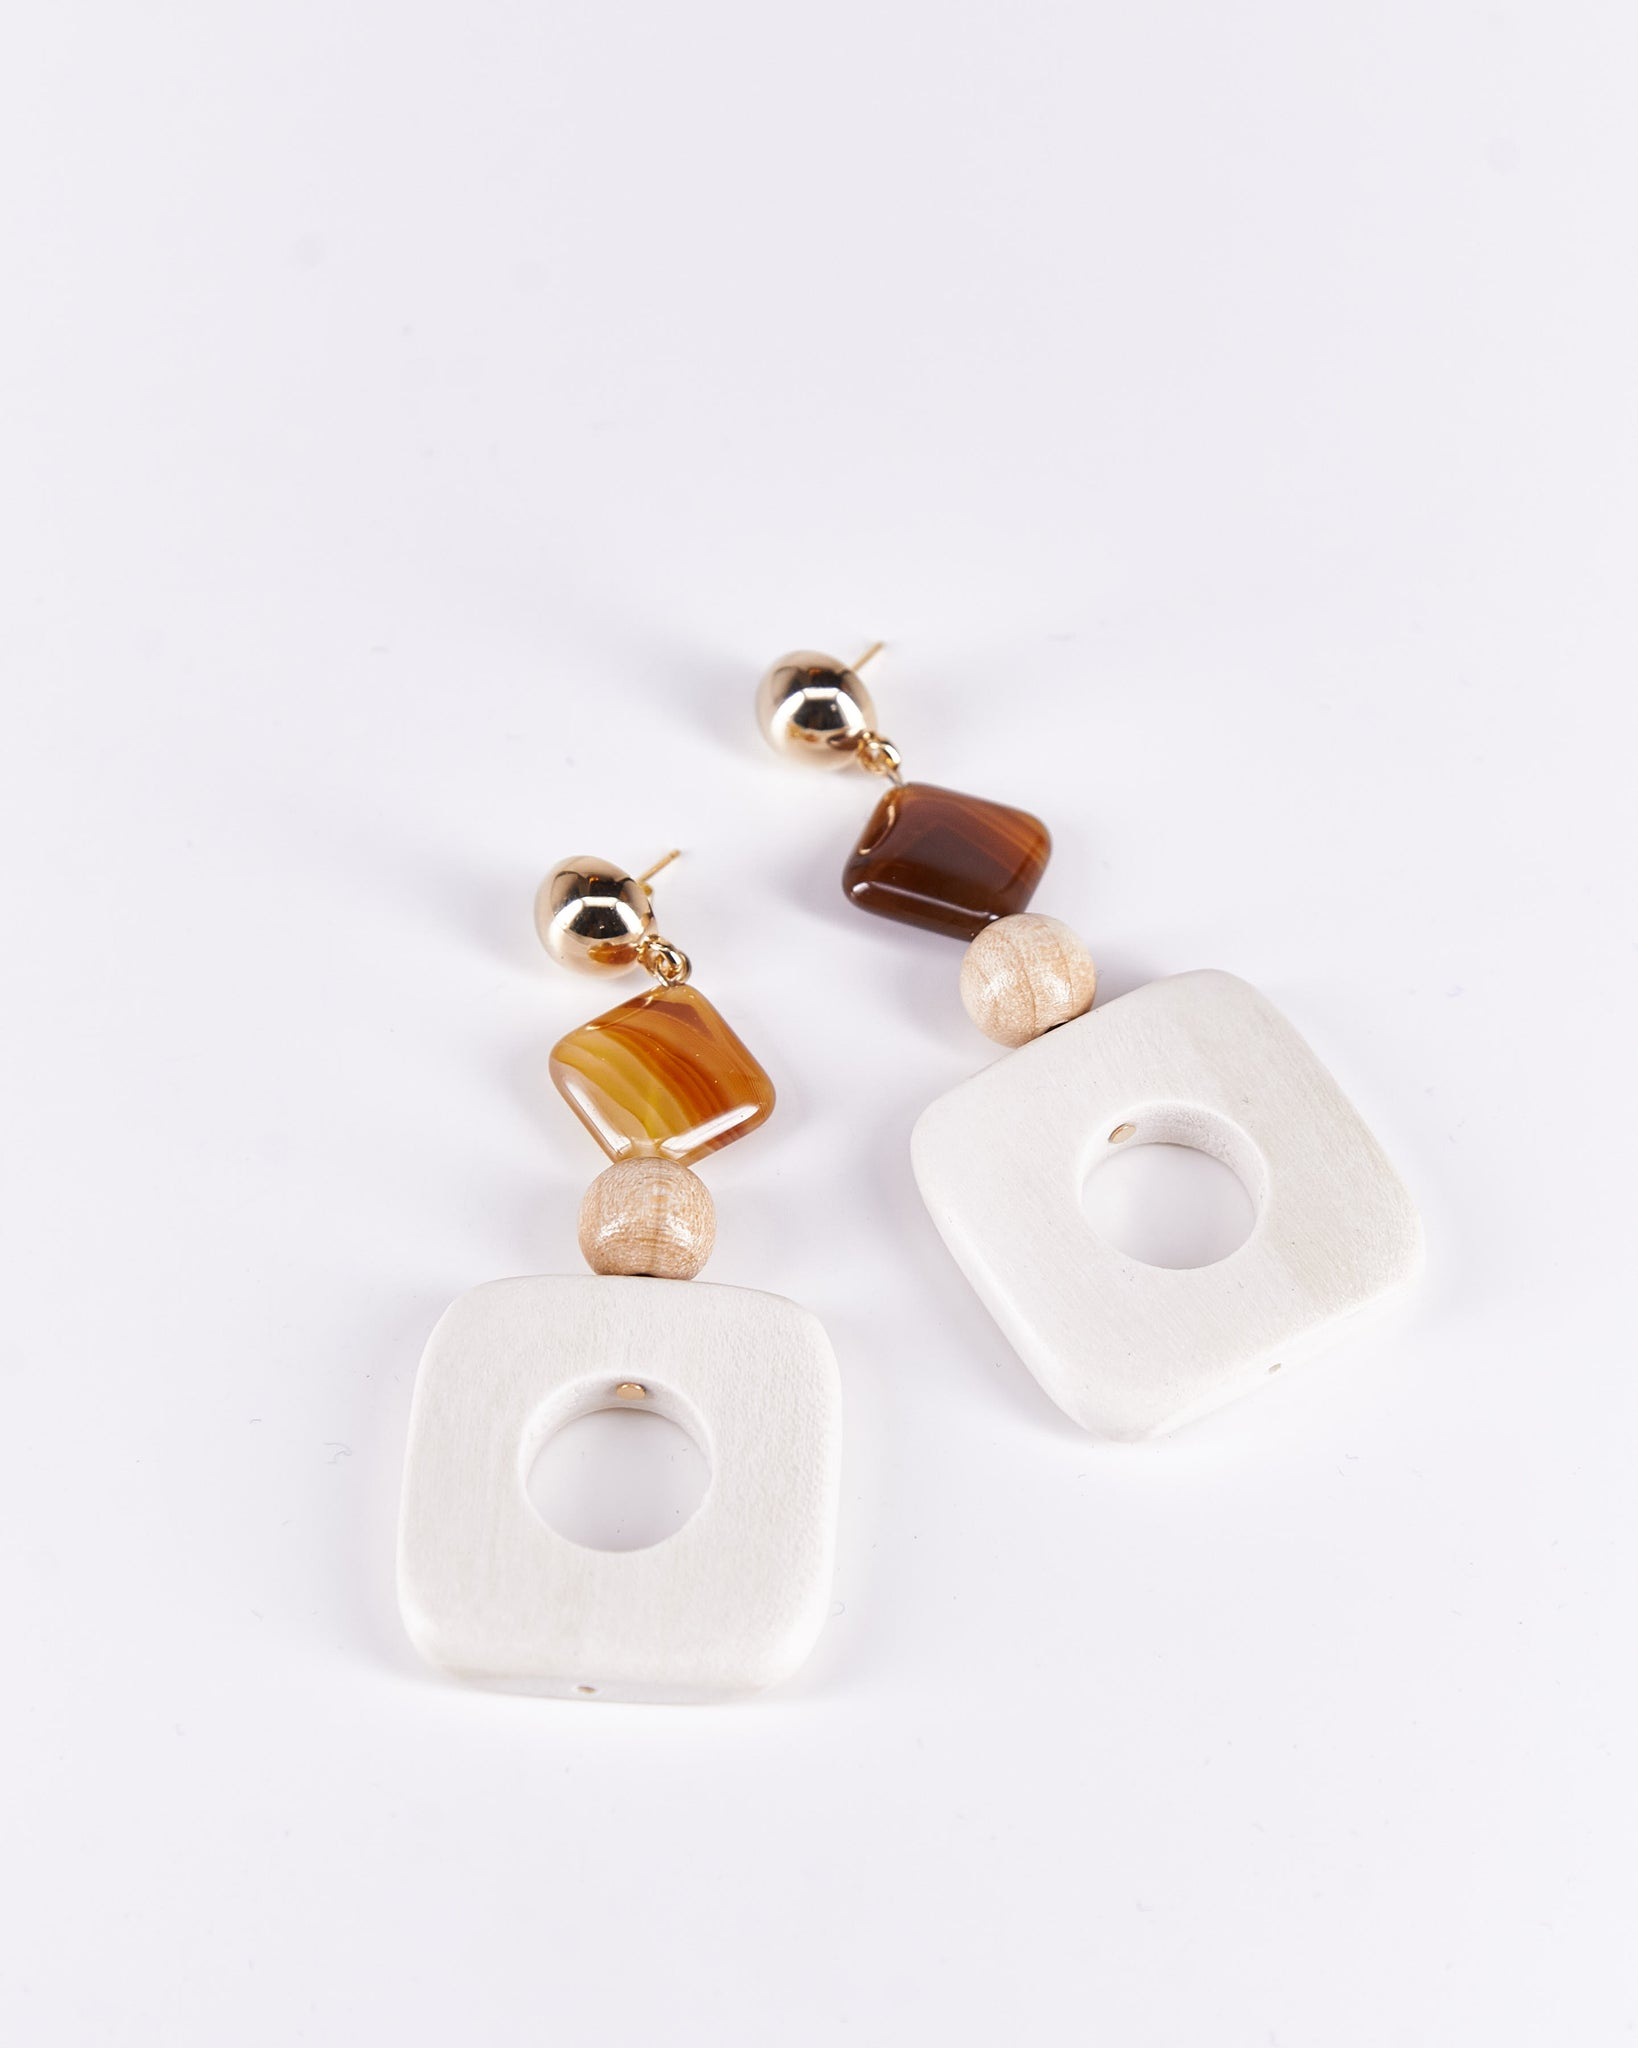 Earrings-Clavel-ProjectBon-Acetate-Handmade-Localdesigners-Nuovum-BarcelonaEarrings-Clavel-ProjectBon-Acetate-Handmade-Localdesigners-Nuovum-BarcelonaEarrings-Clavel-ProjectBon-Acetate-Handmade-Localdesigners-Nuovum-BarcelonaEarrings-Clavel-ProjectBon-Acetate-Handmade-Localdesigners-Nuovum-Barcelona